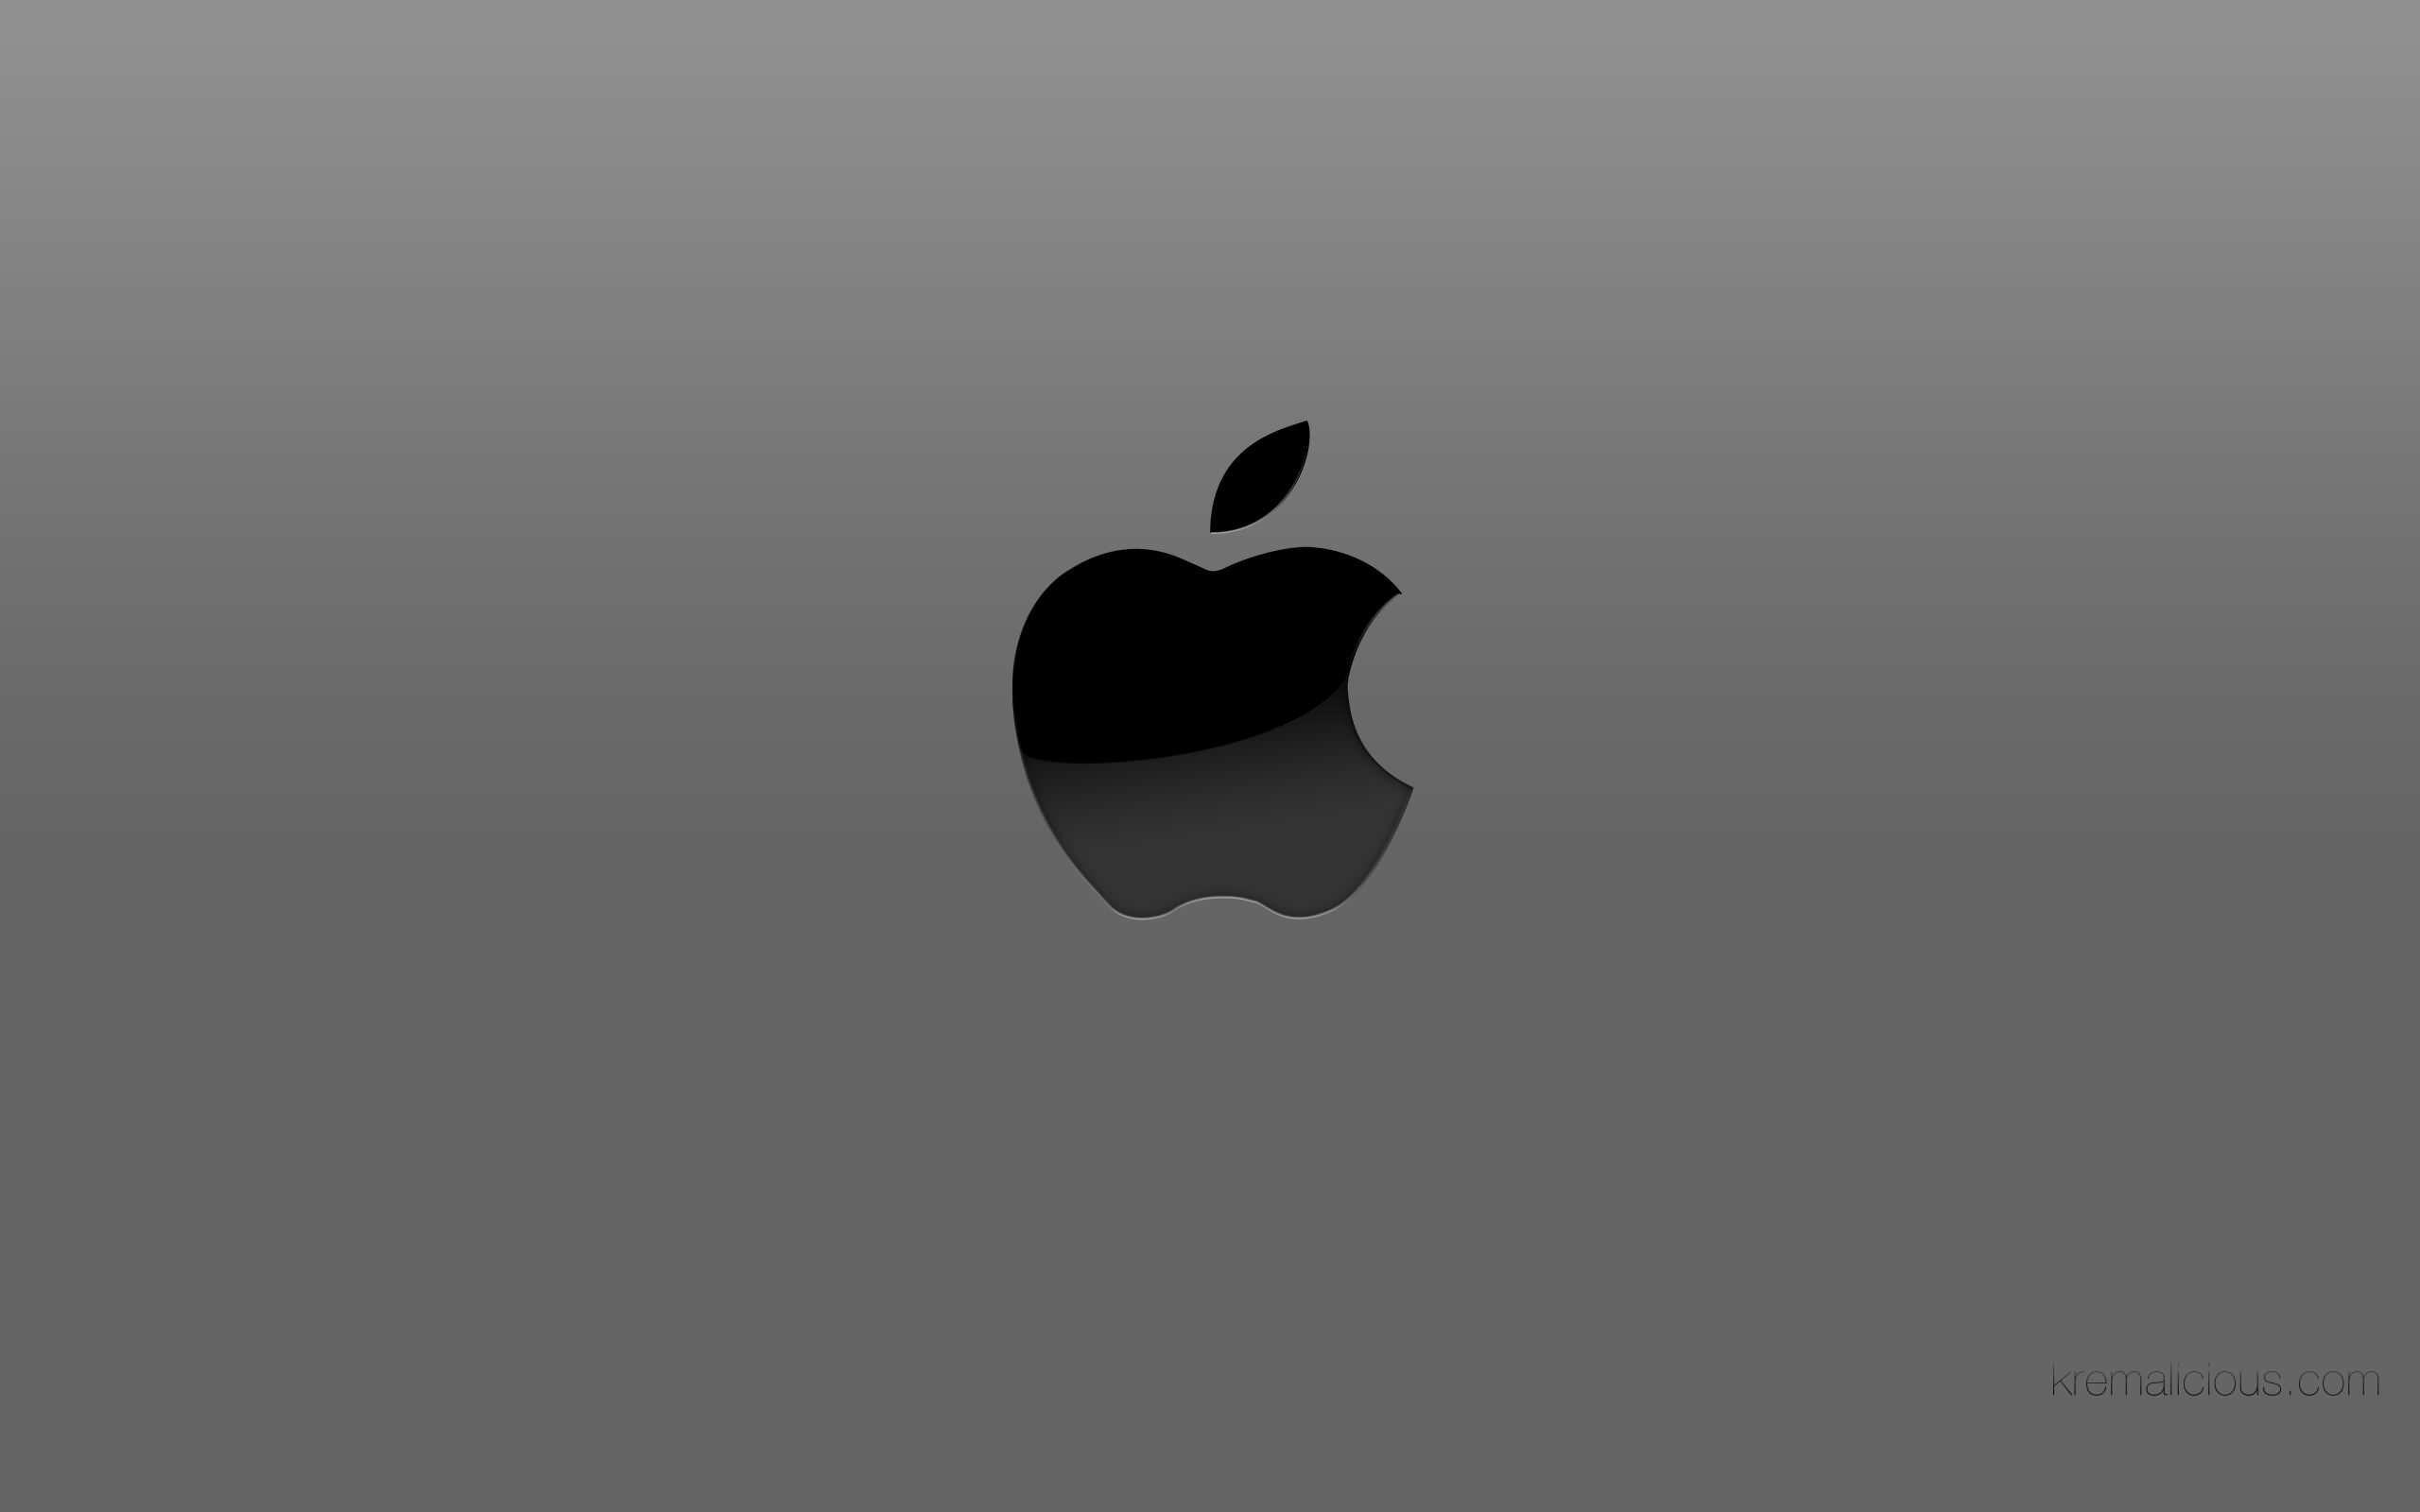 apple logo wallpapers hd 1080p for iphone - wallpaper cave